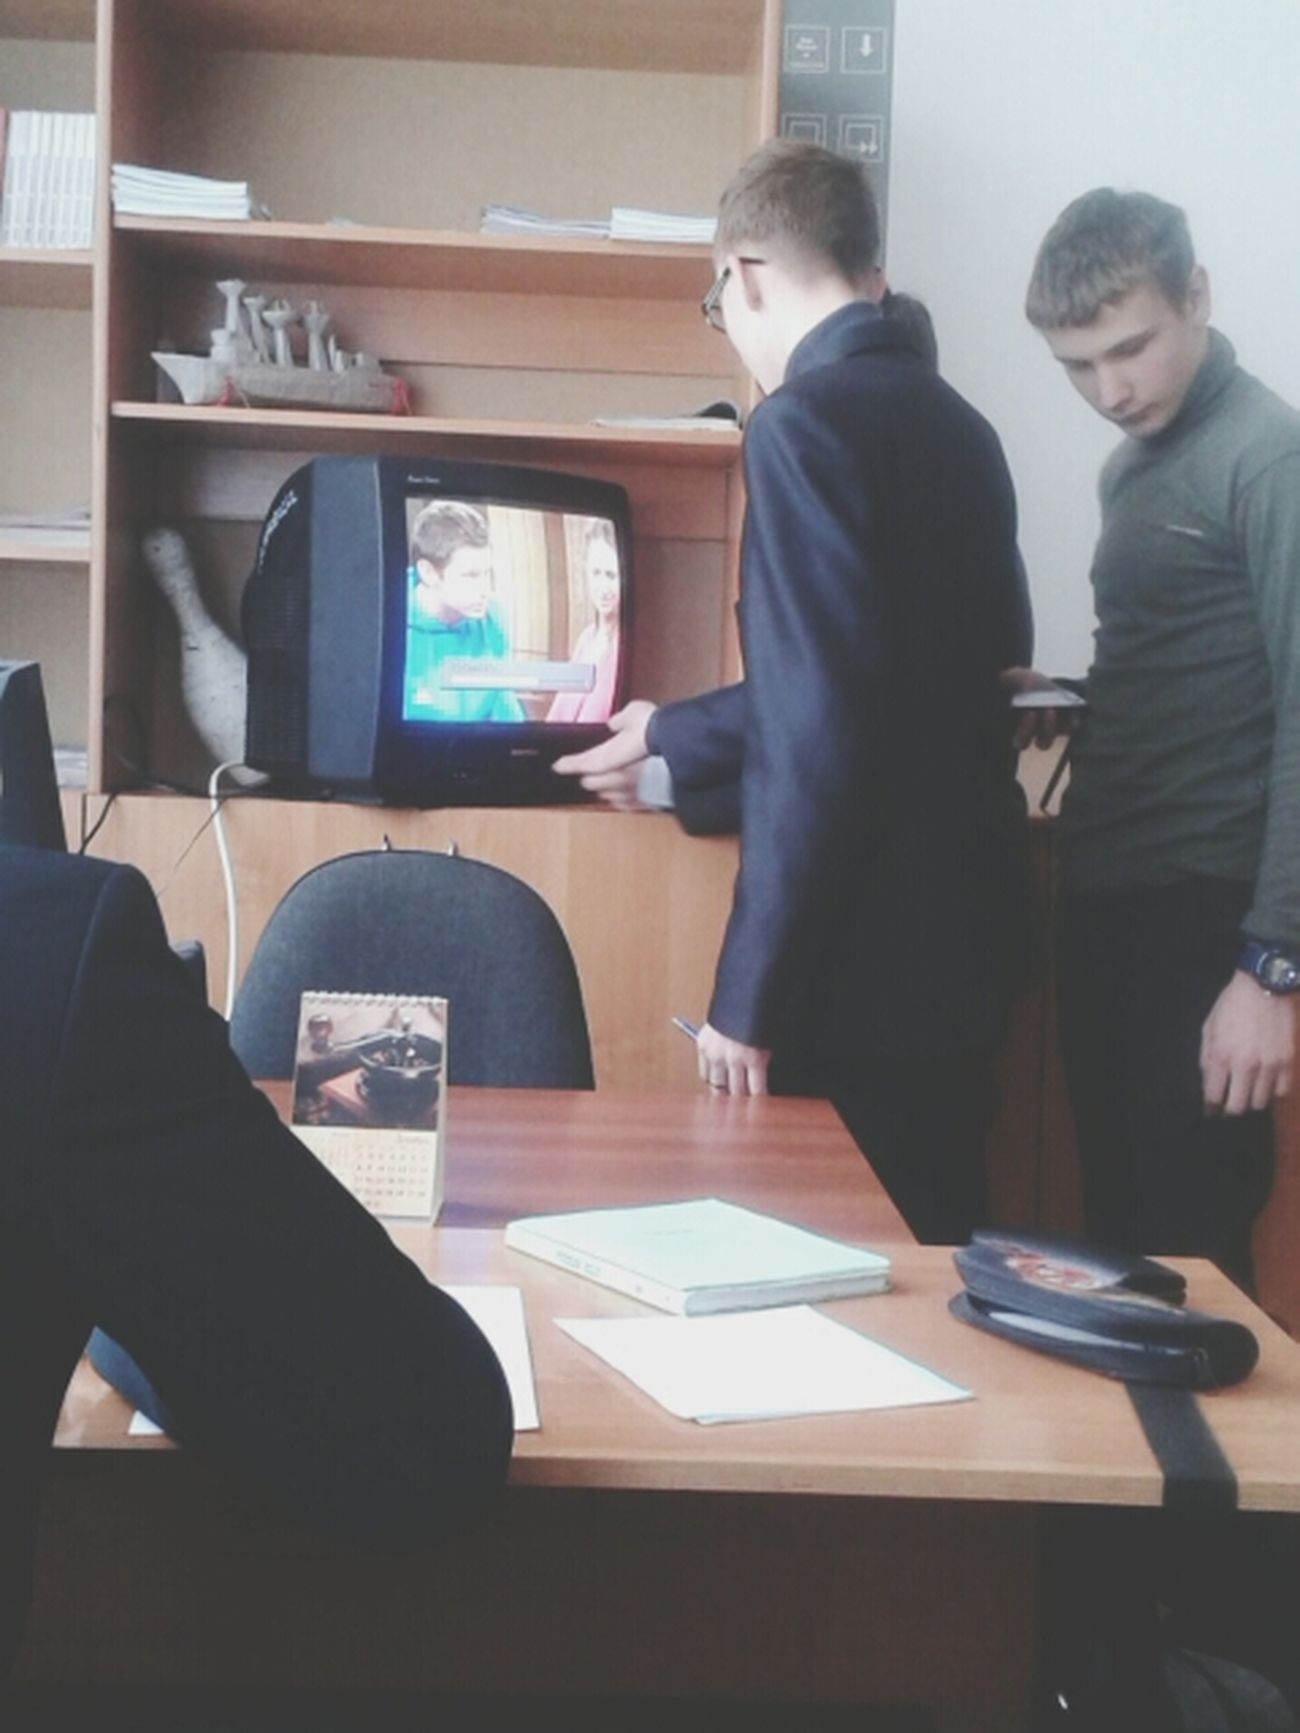 This Is Russia Usual Lesson Watch TV :D